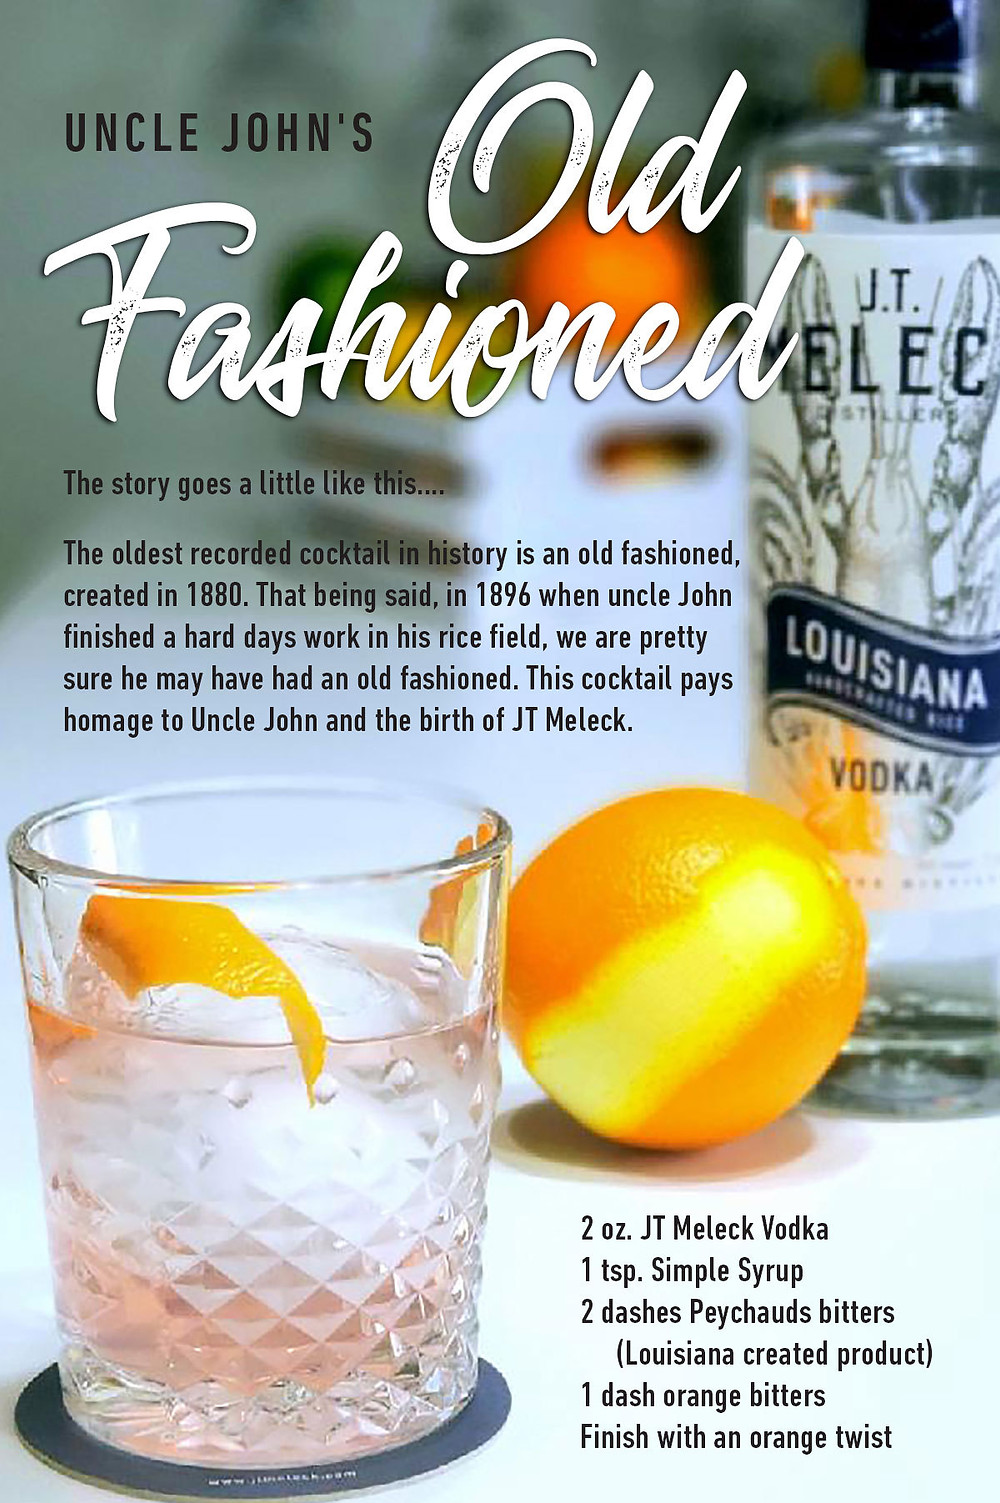 An old fashioned made with JT Meleck Vodka